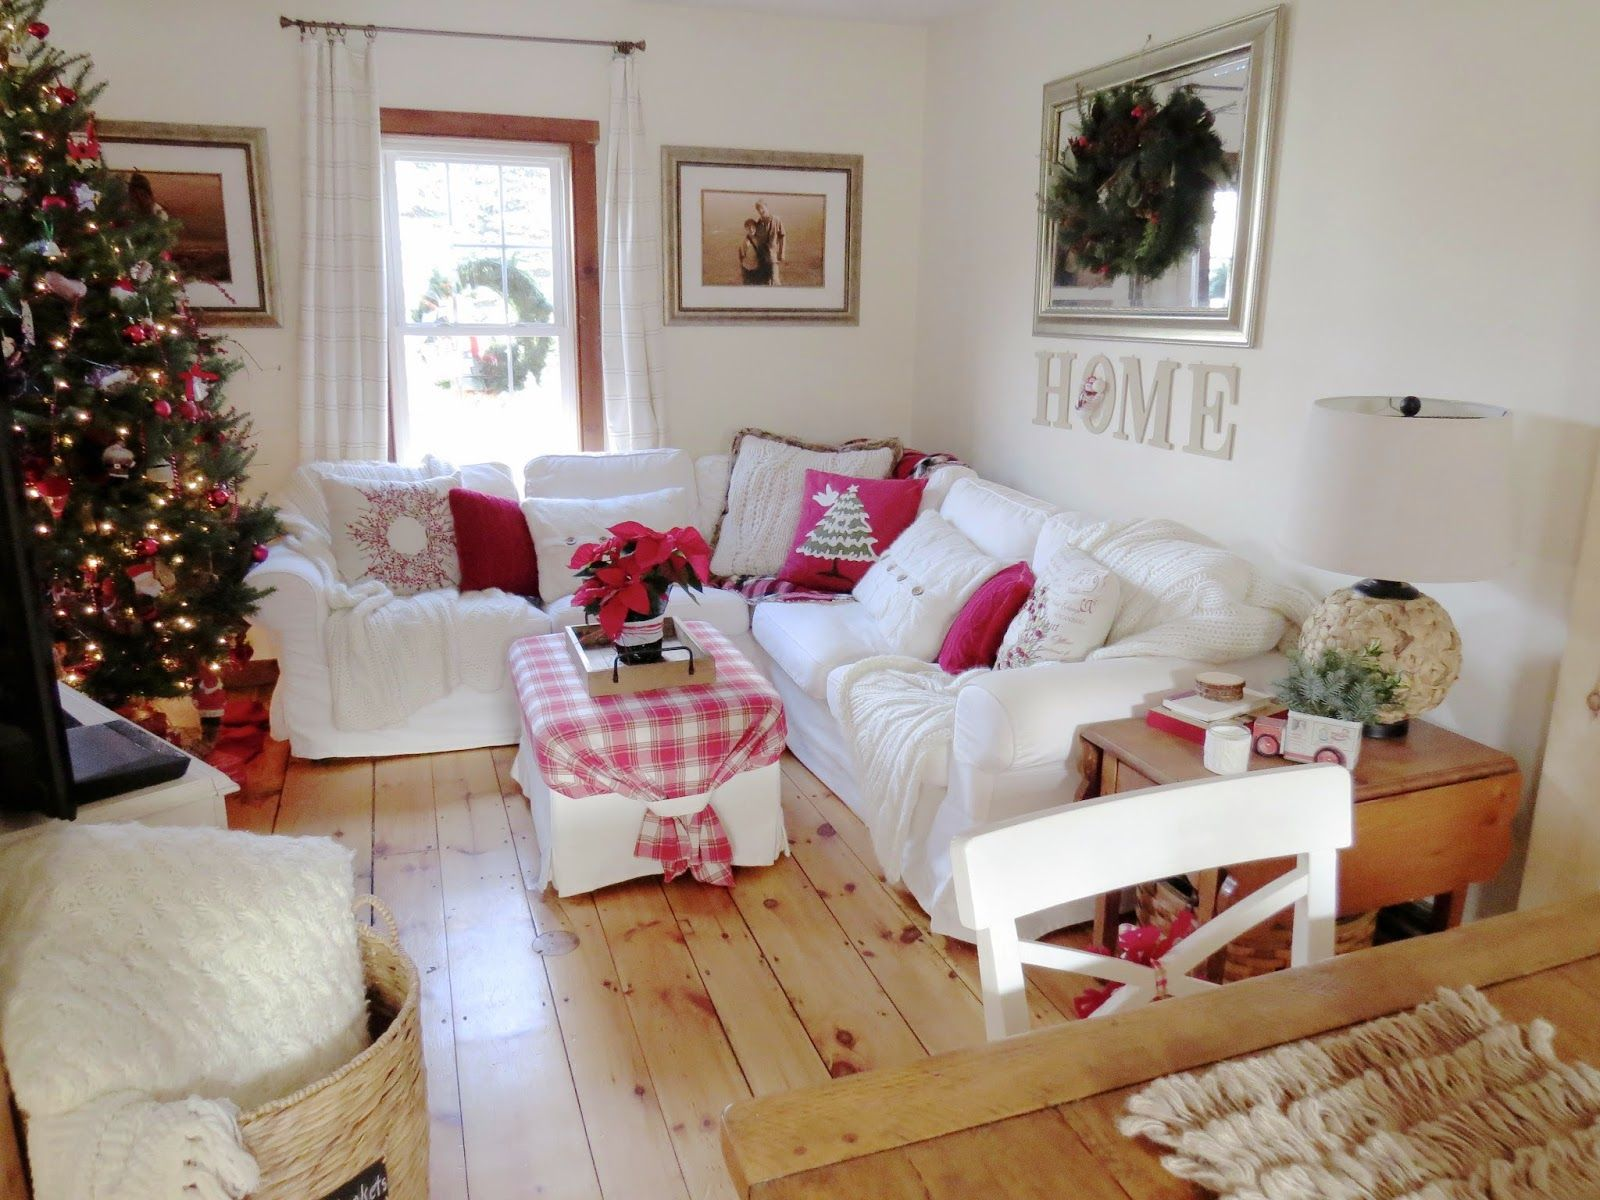 blekinge white ikea sectional sofa with red accents for christmas wide pine floors wide pine. Black Bedroom Furniture Sets. Home Design Ideas